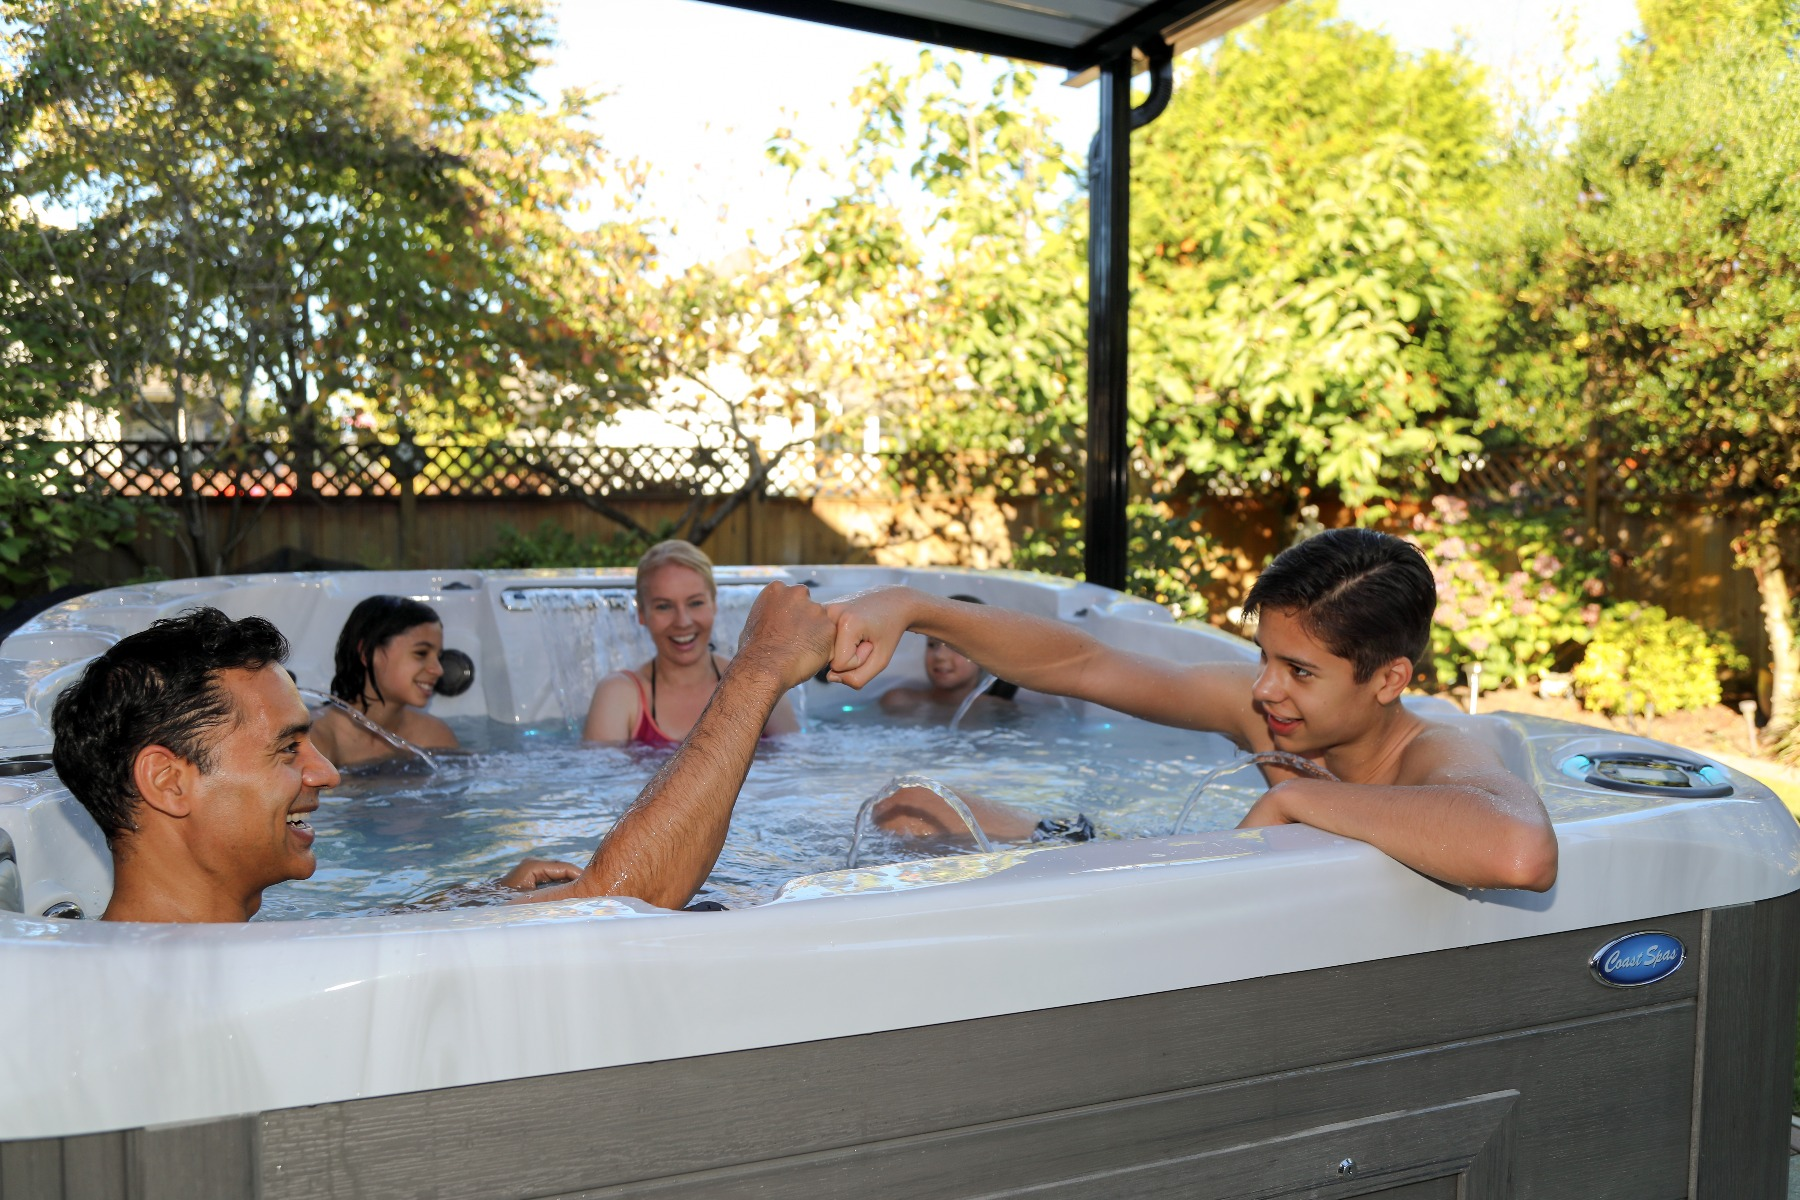 Hot Tubs are a great place for the family to reconnect this Mothers Day